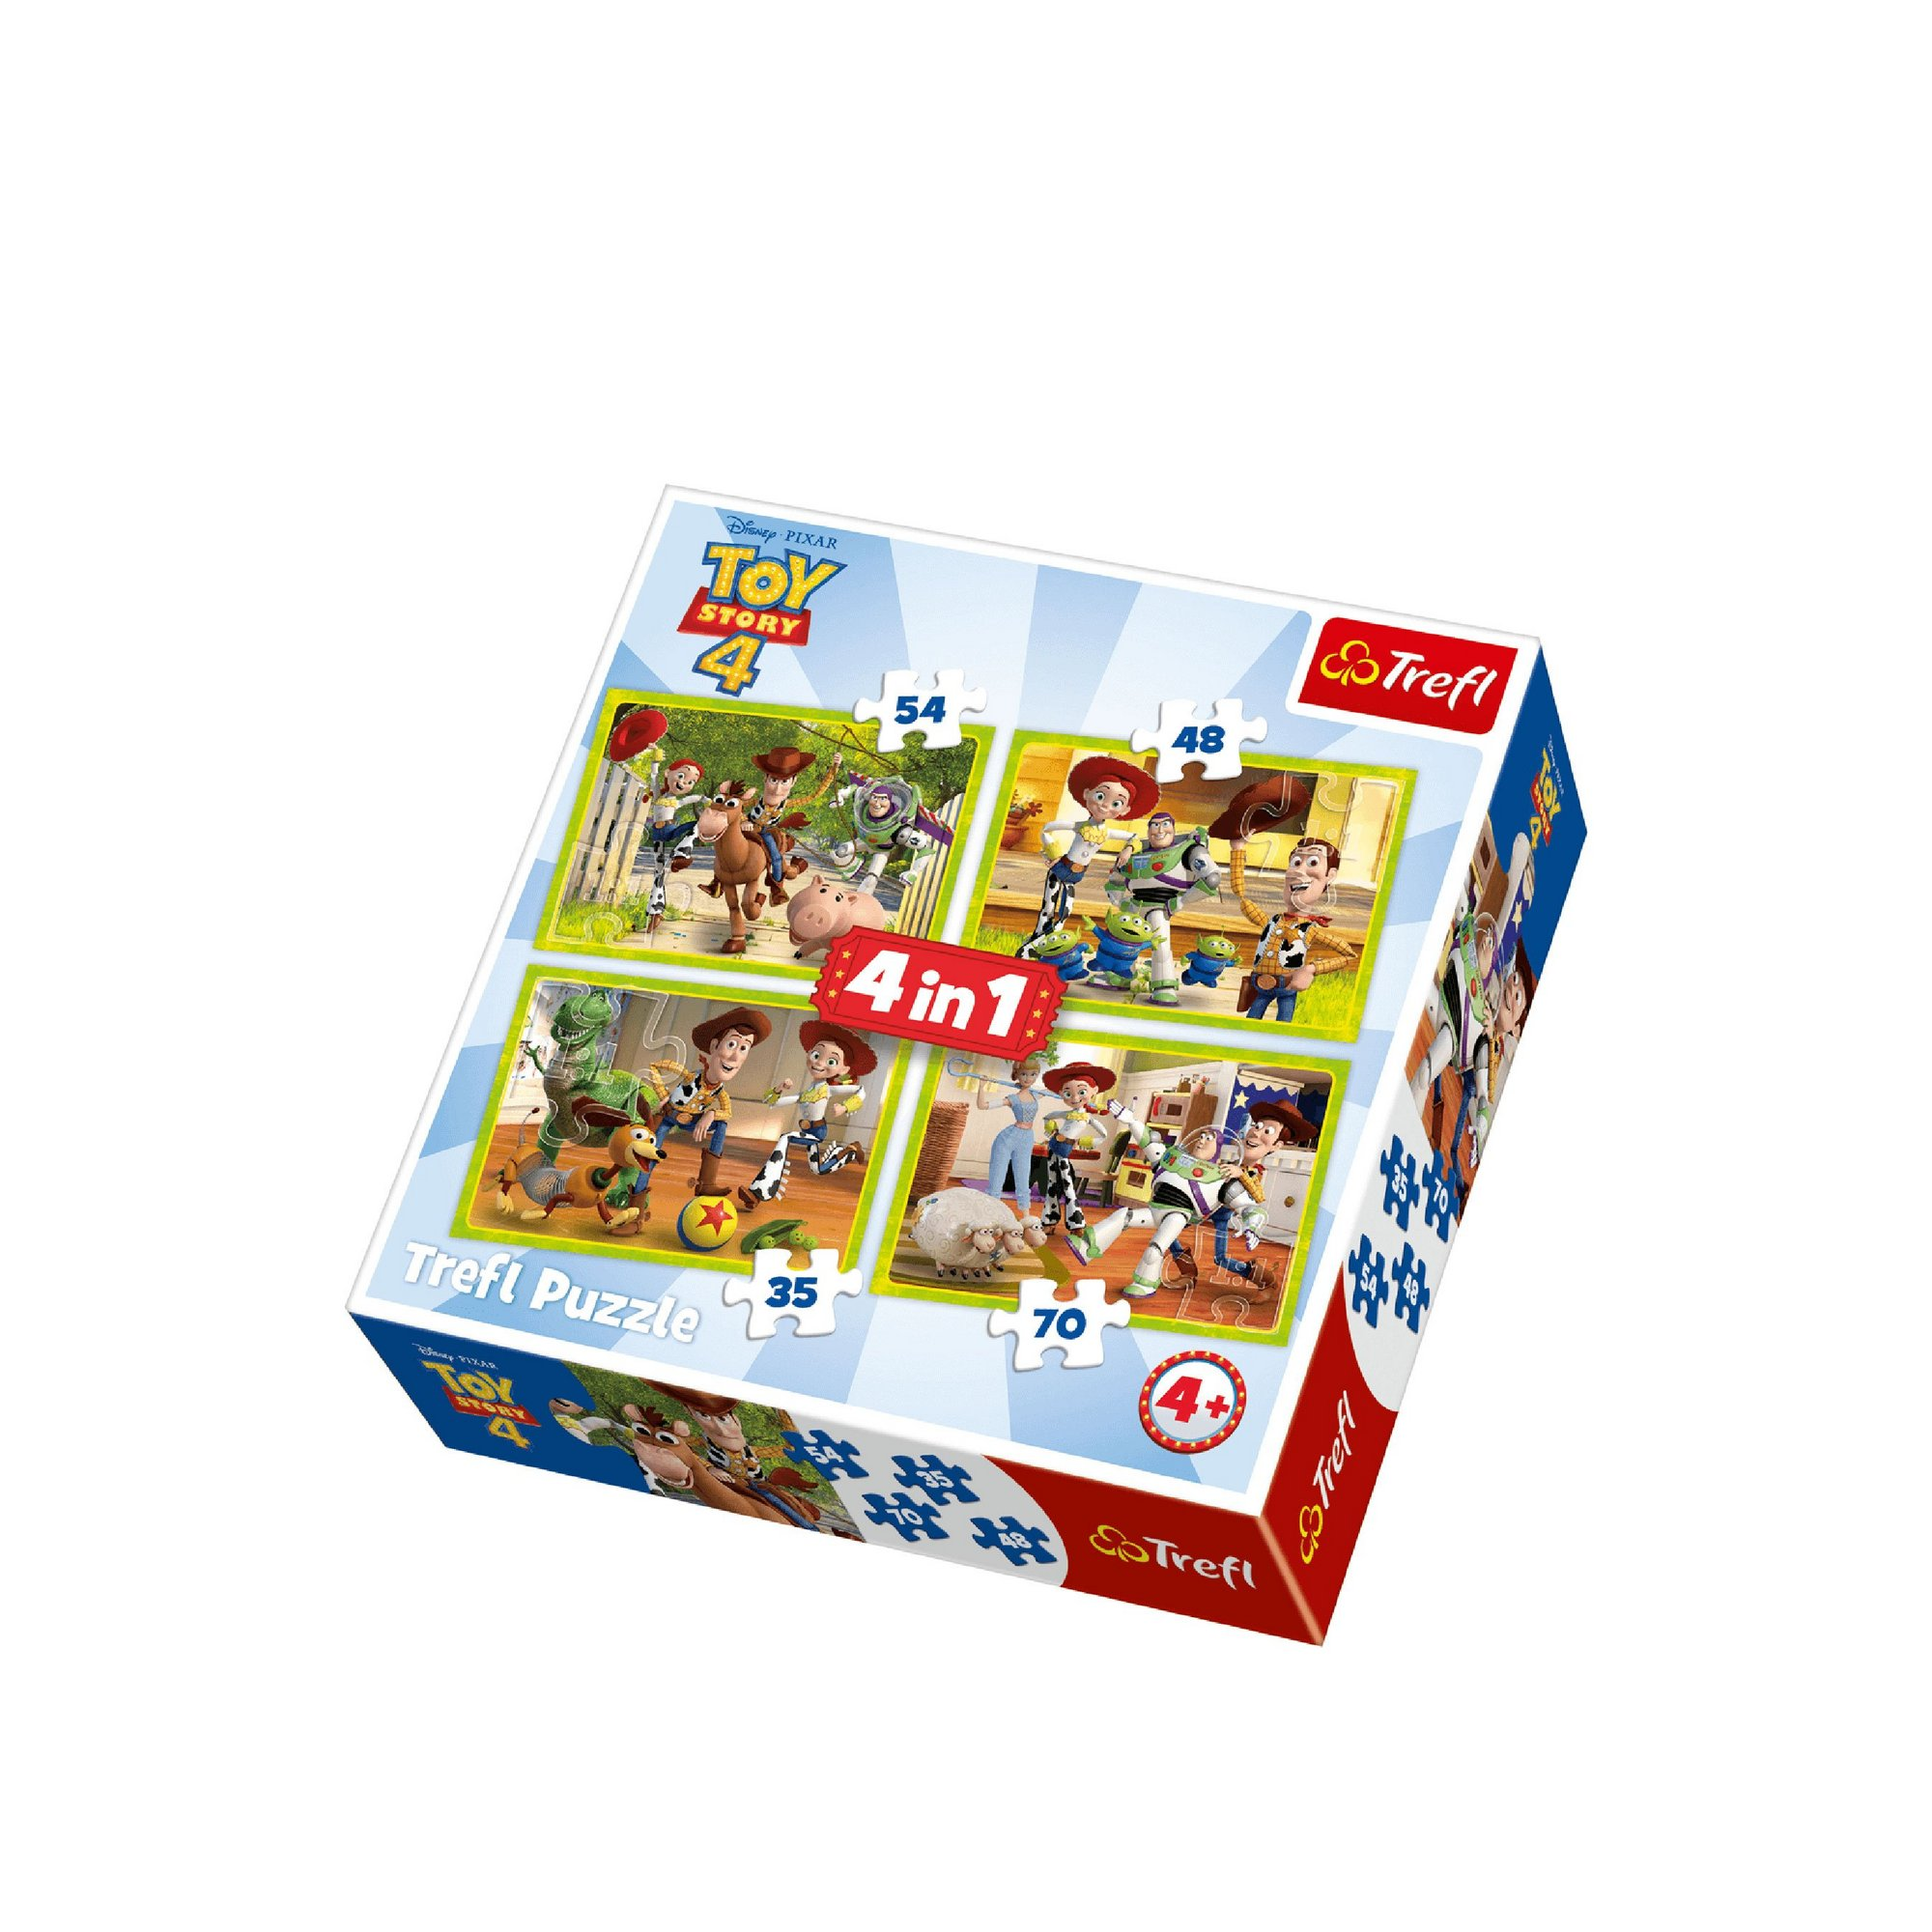 Image of 4 in 1 Toy Story Jigsaw Puzzle